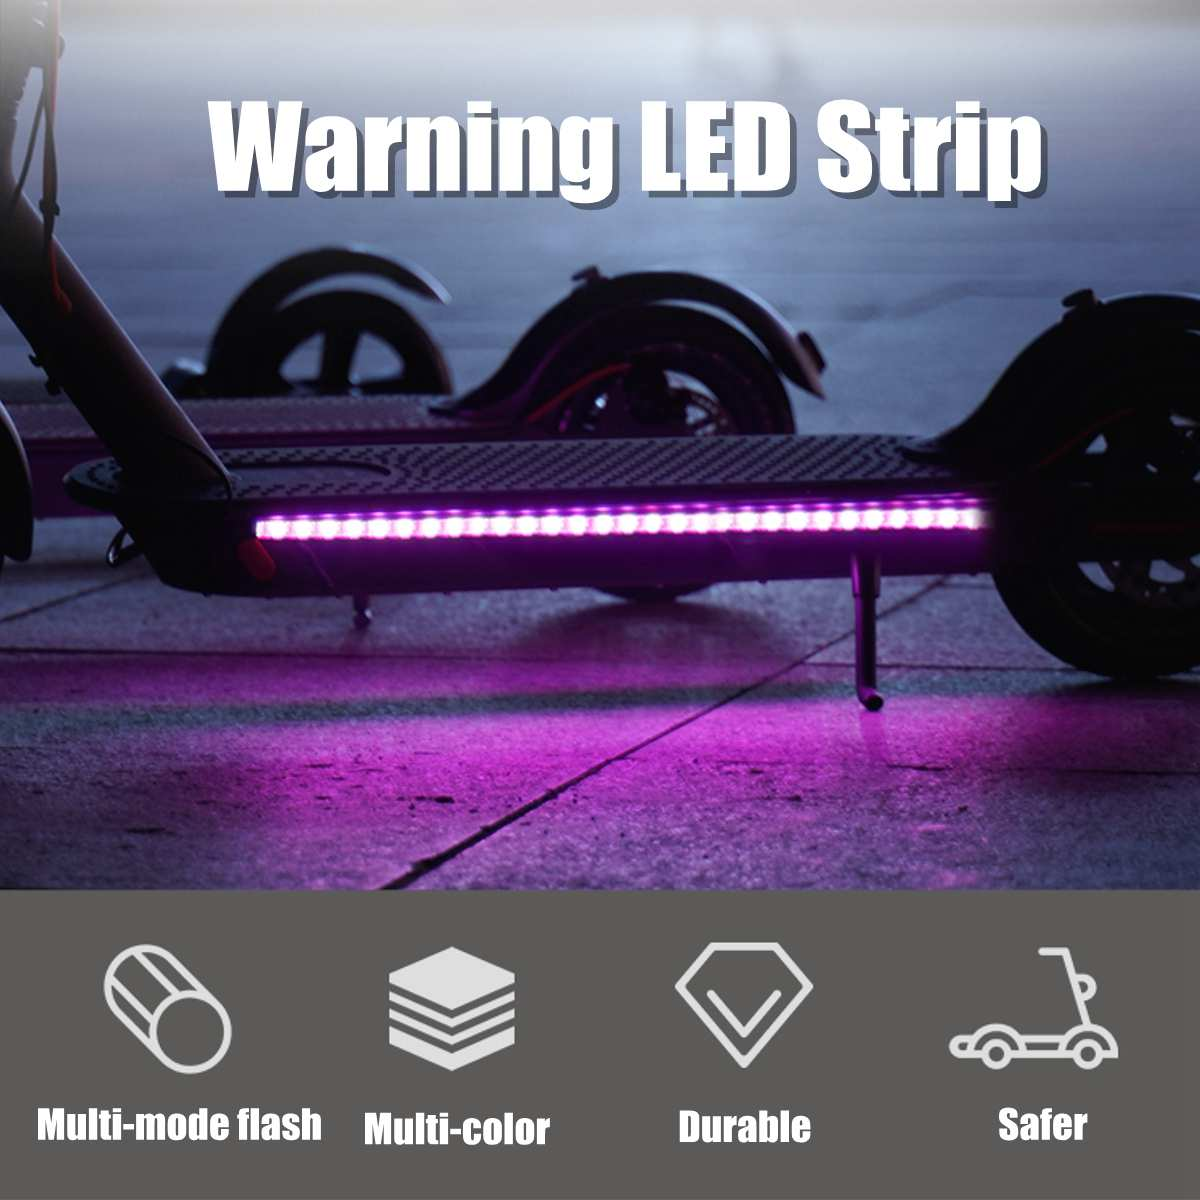 Warning LED Strip Flashlight Bar Lamp For Xiaomi Mijia M365 Electric Scooter Skateboard Night Cycling Safety Decorative Light